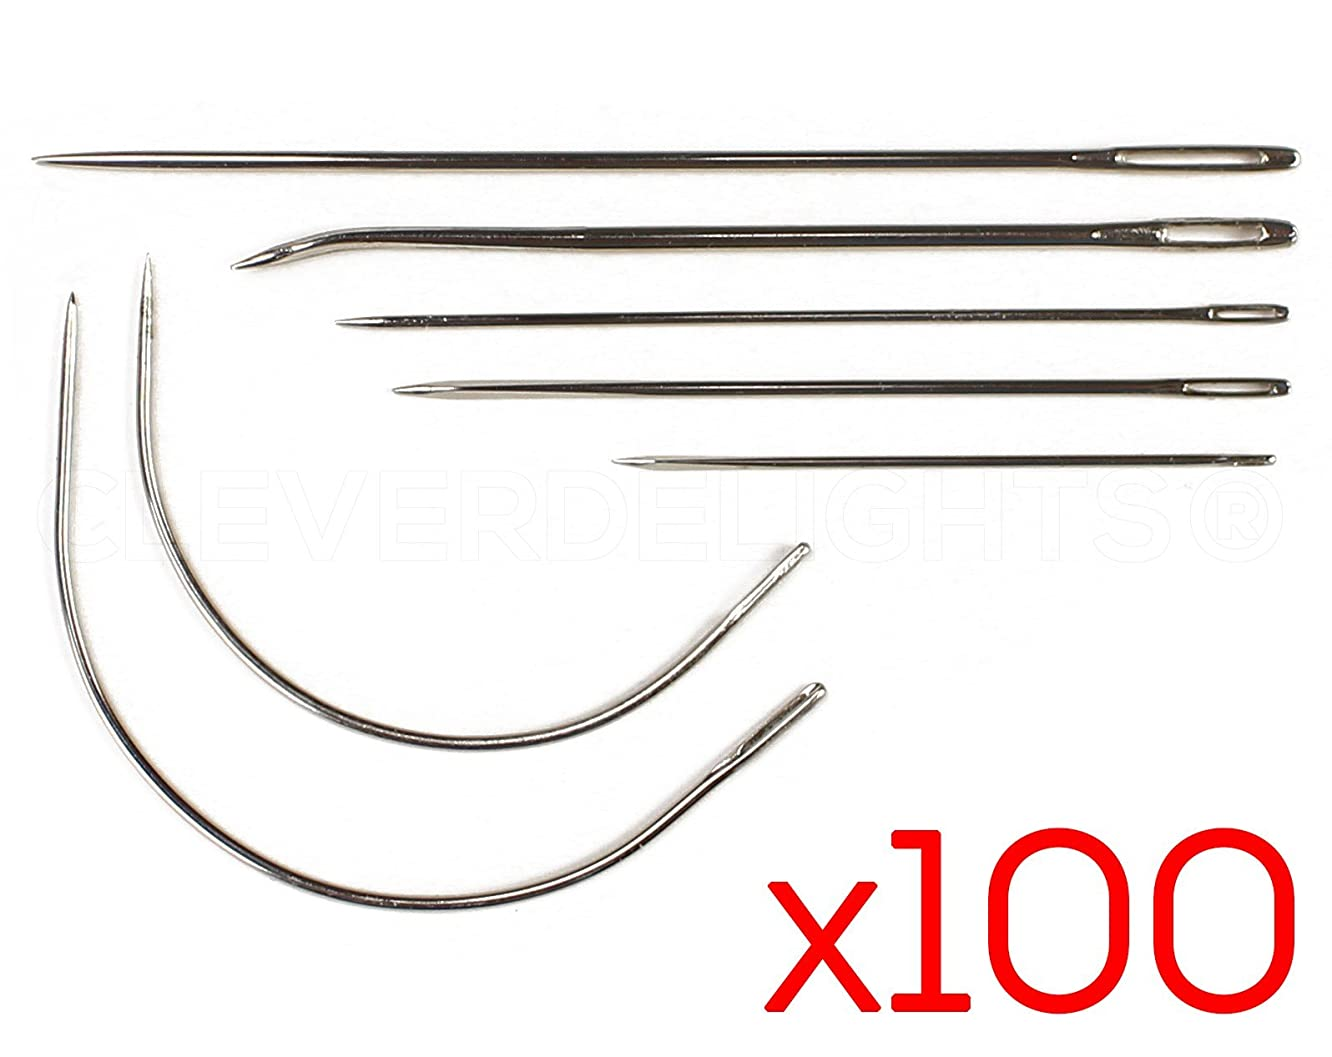 100 Sets - 7 Piece Needle Kit - Stainless Steel Hand Repair Needles - Curved Straight Bulk Needles